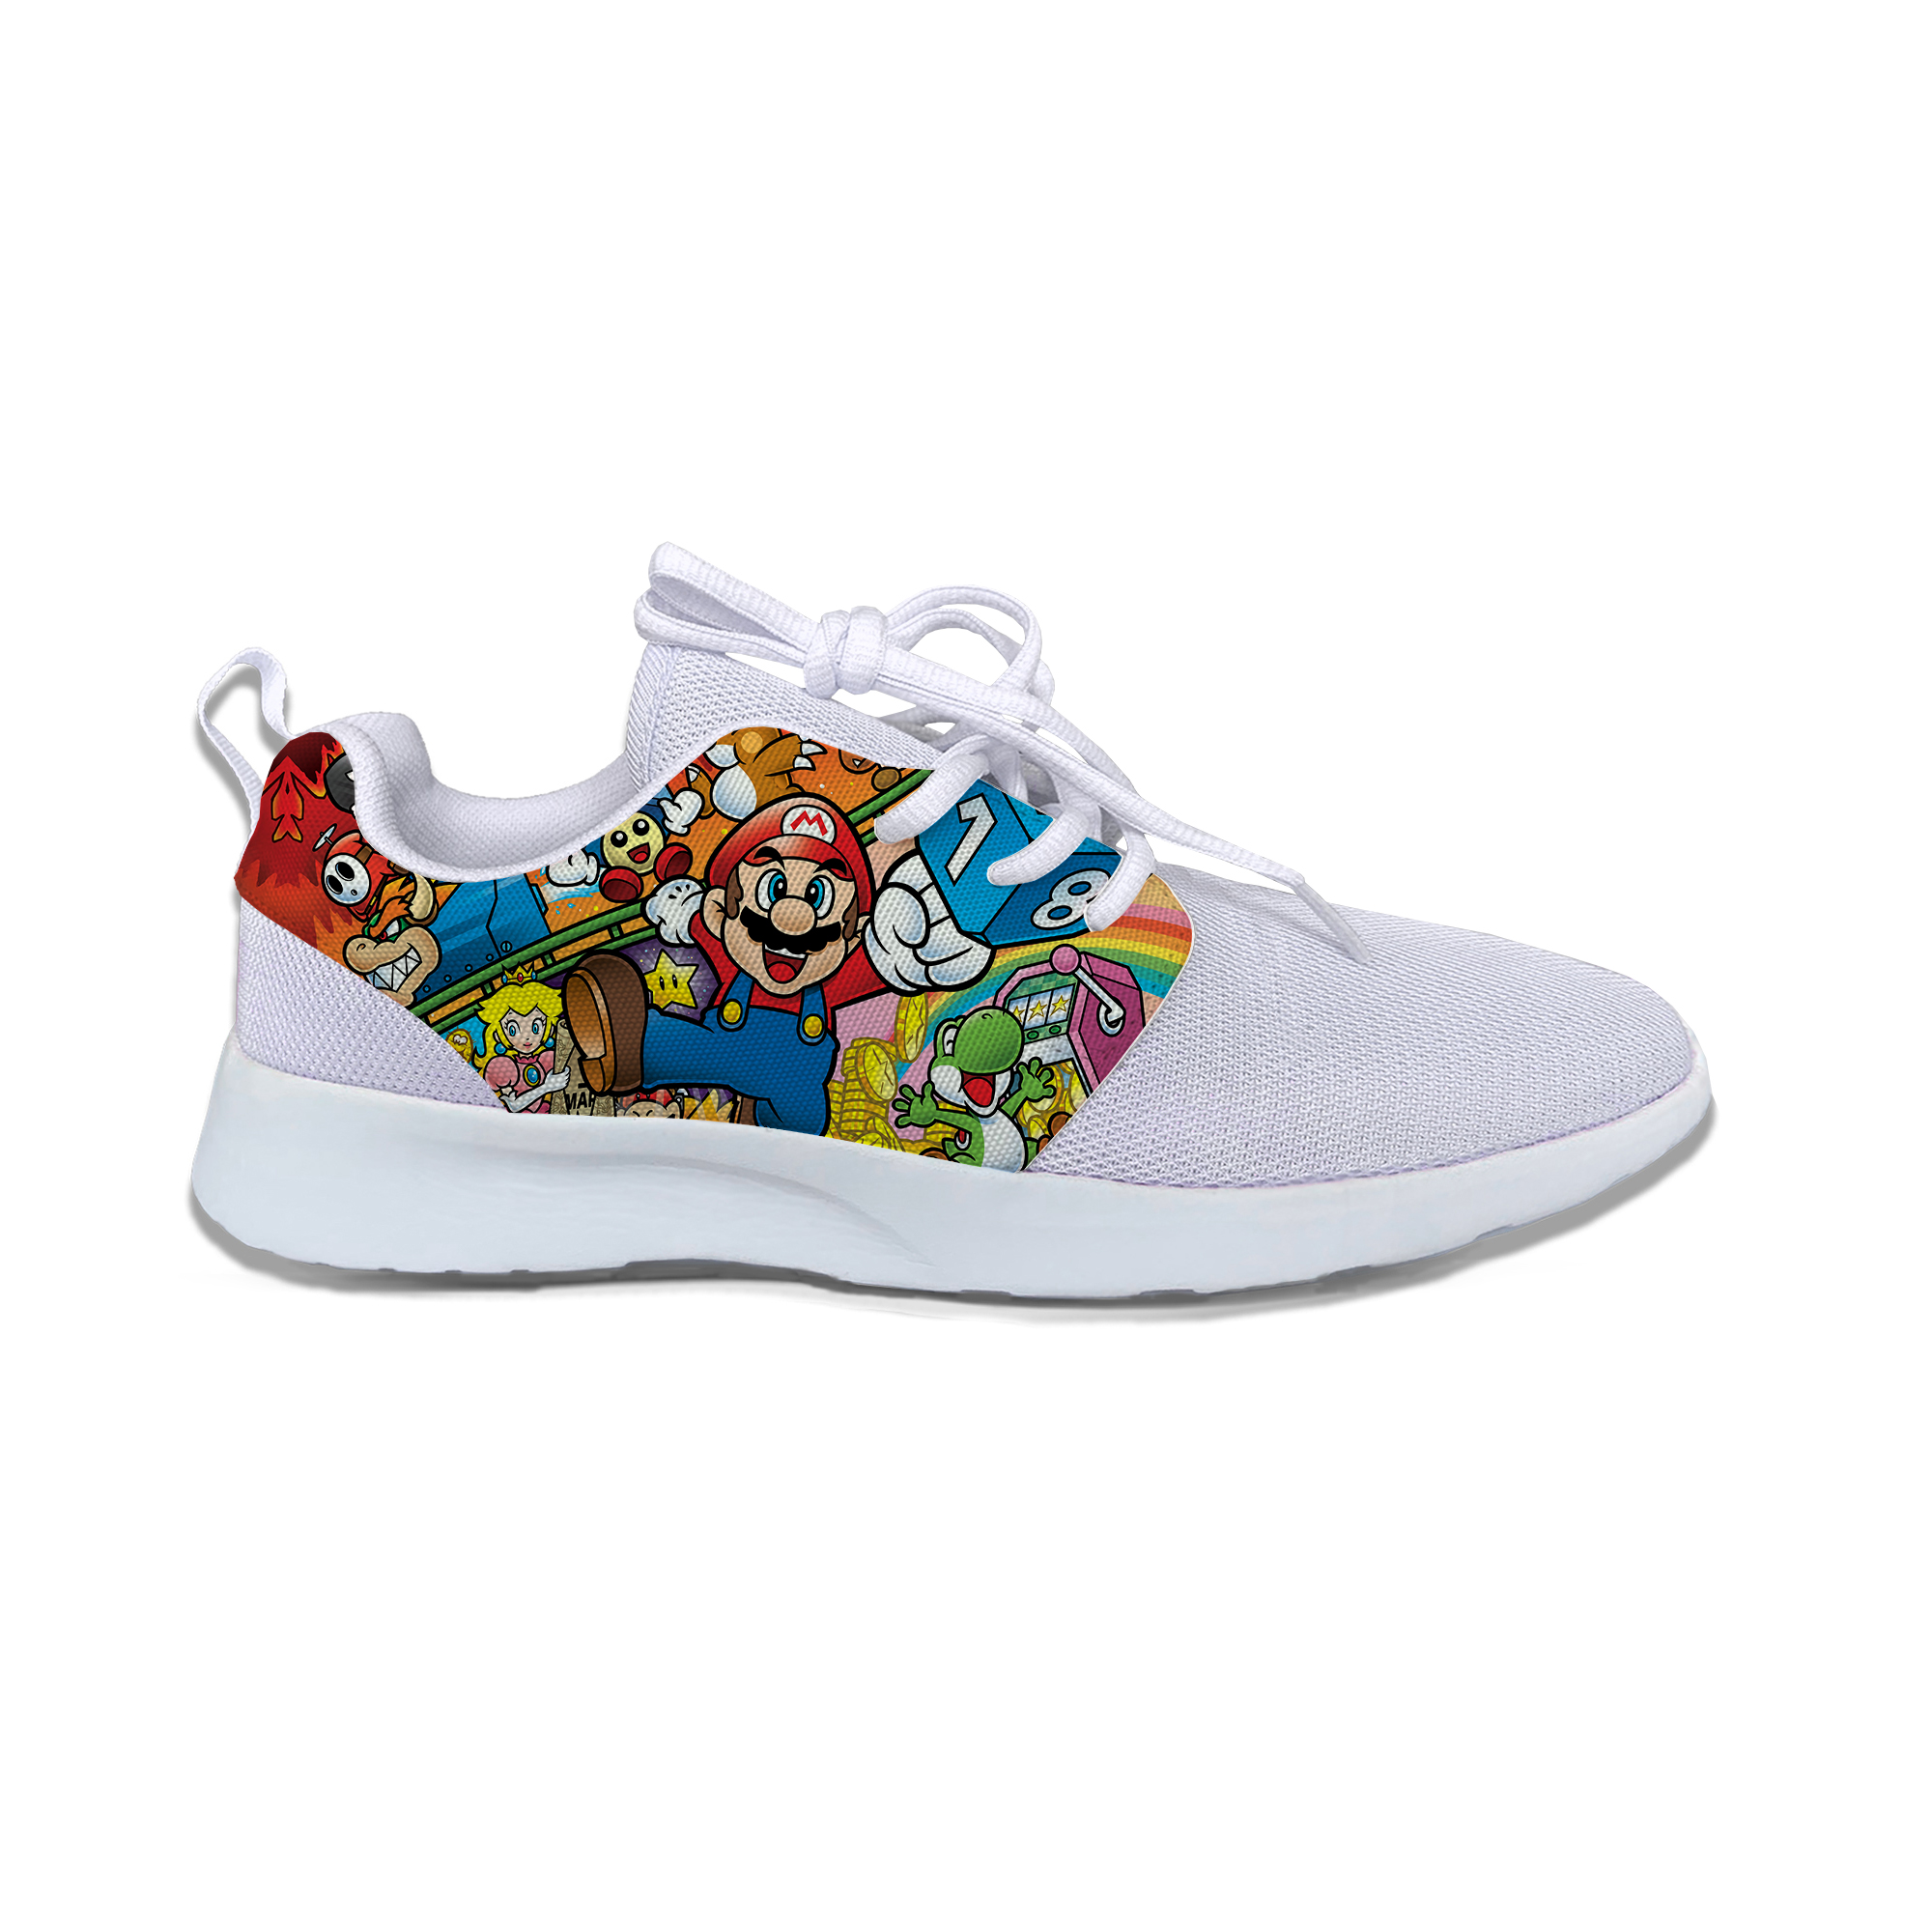 Game Mario Hot Super Fashion Cool Cartoon Kids Breathable Sport Running Shoes Funny Cute Sneakers Gift For Boys Girls Children